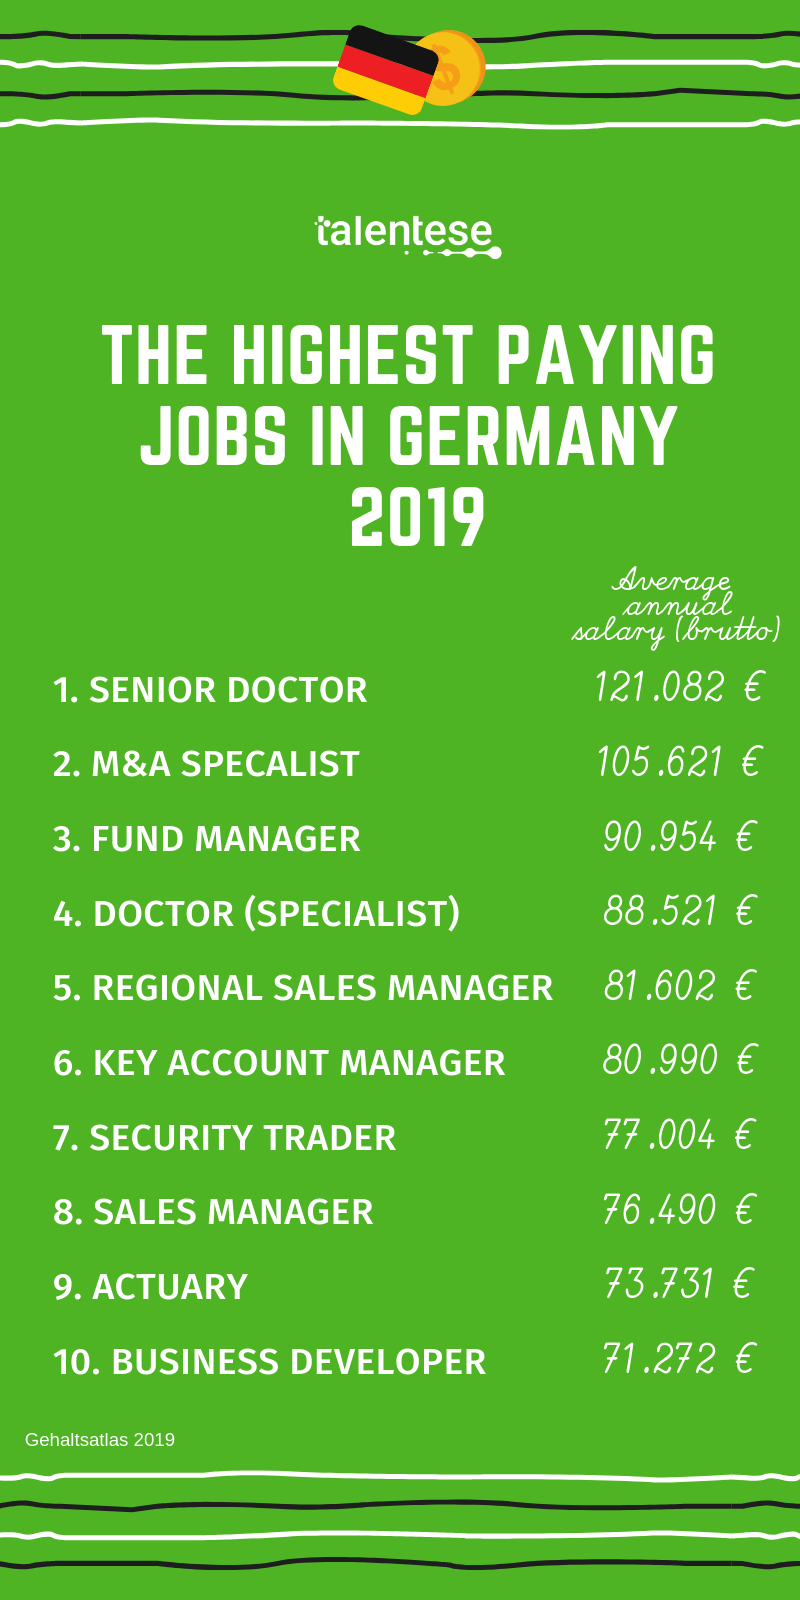 Recent researches have revealed highest paying jobs in